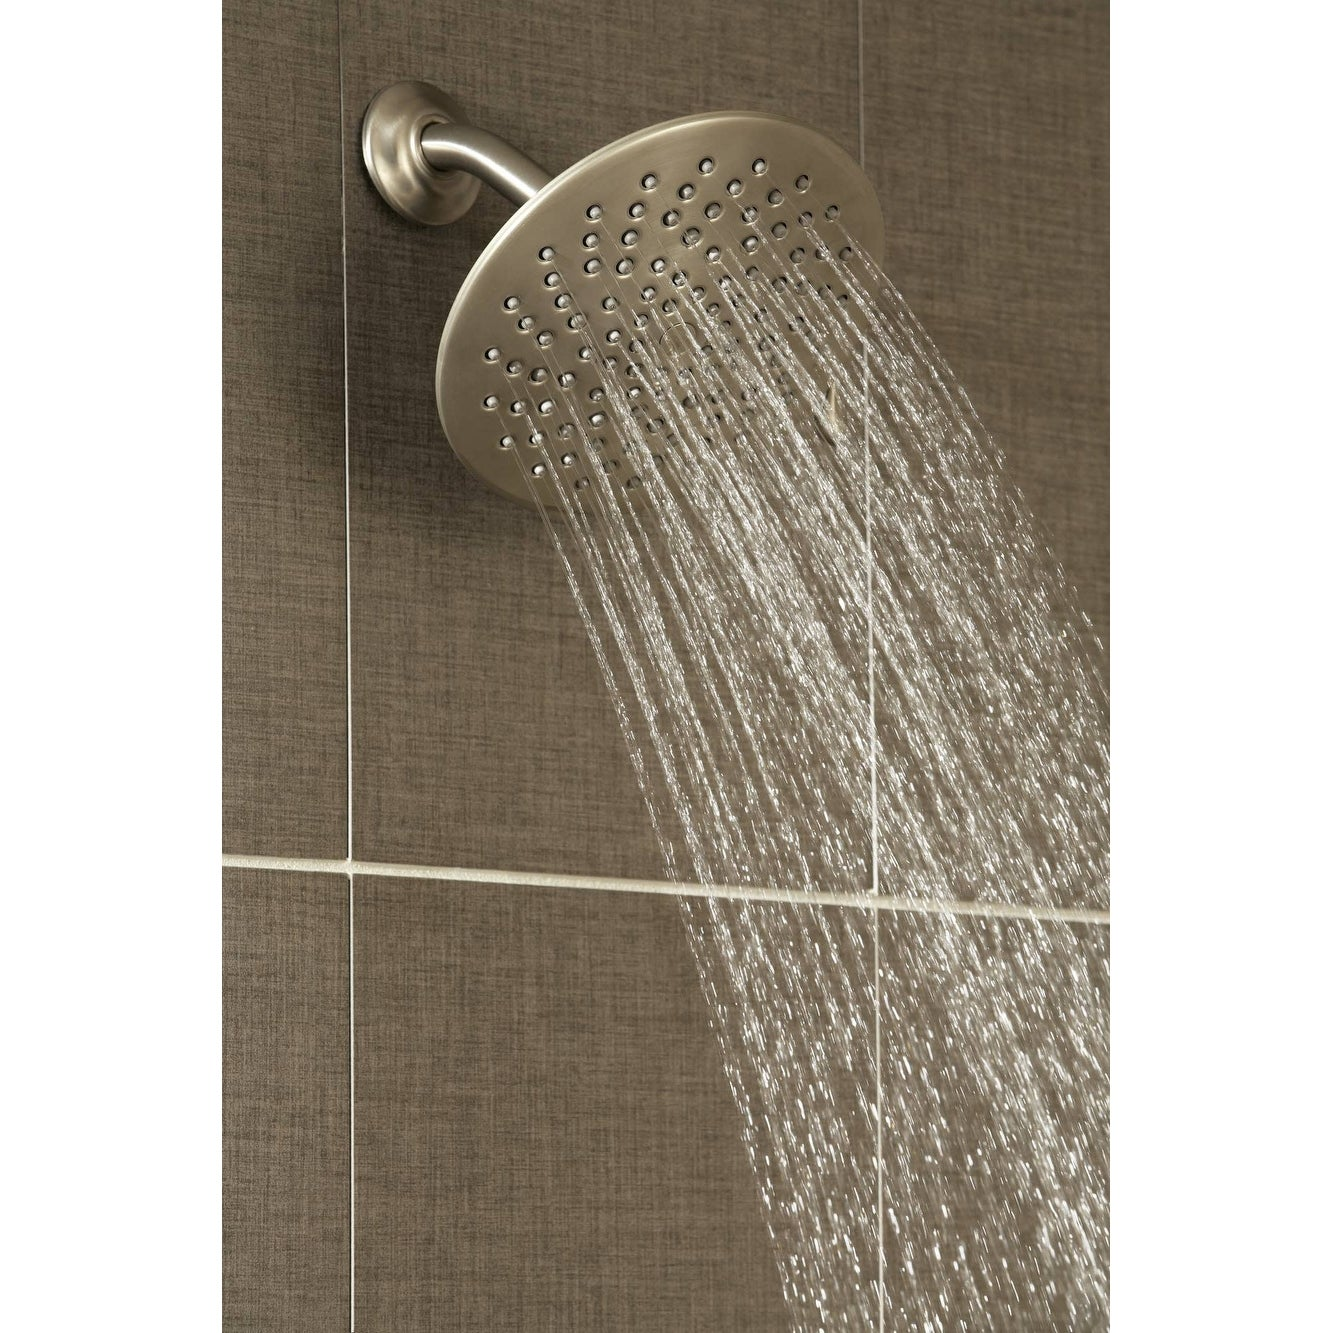 Moen S6320ep 8 Multi Function Rainshower Shower Head With Eco Performance From The Velocity Collection